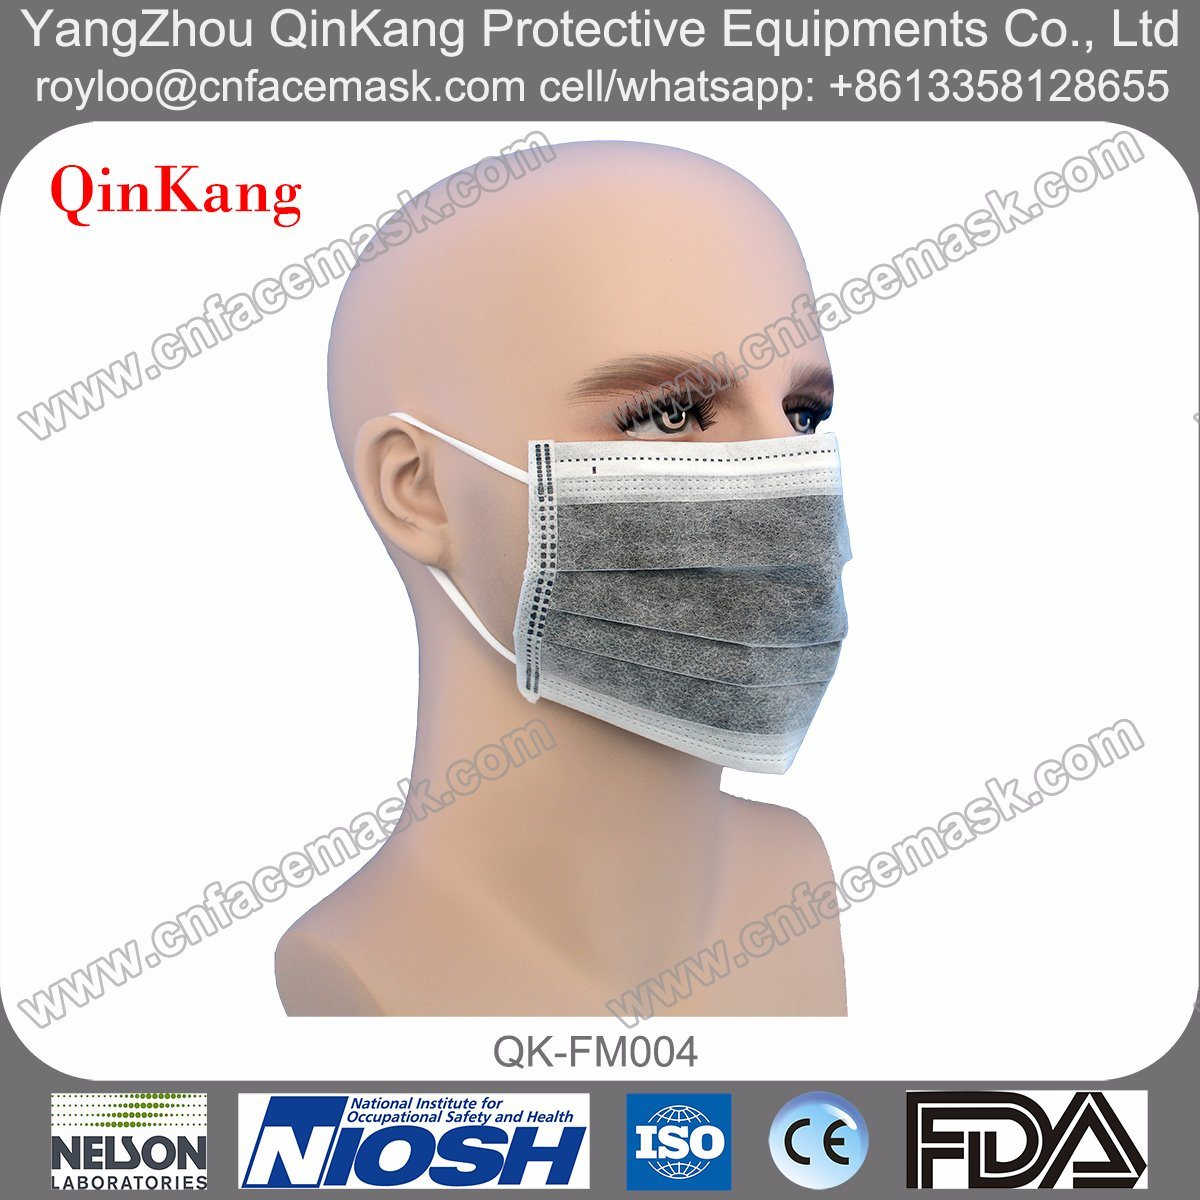 Activated Carbon Particulate Respirator/Face Mask